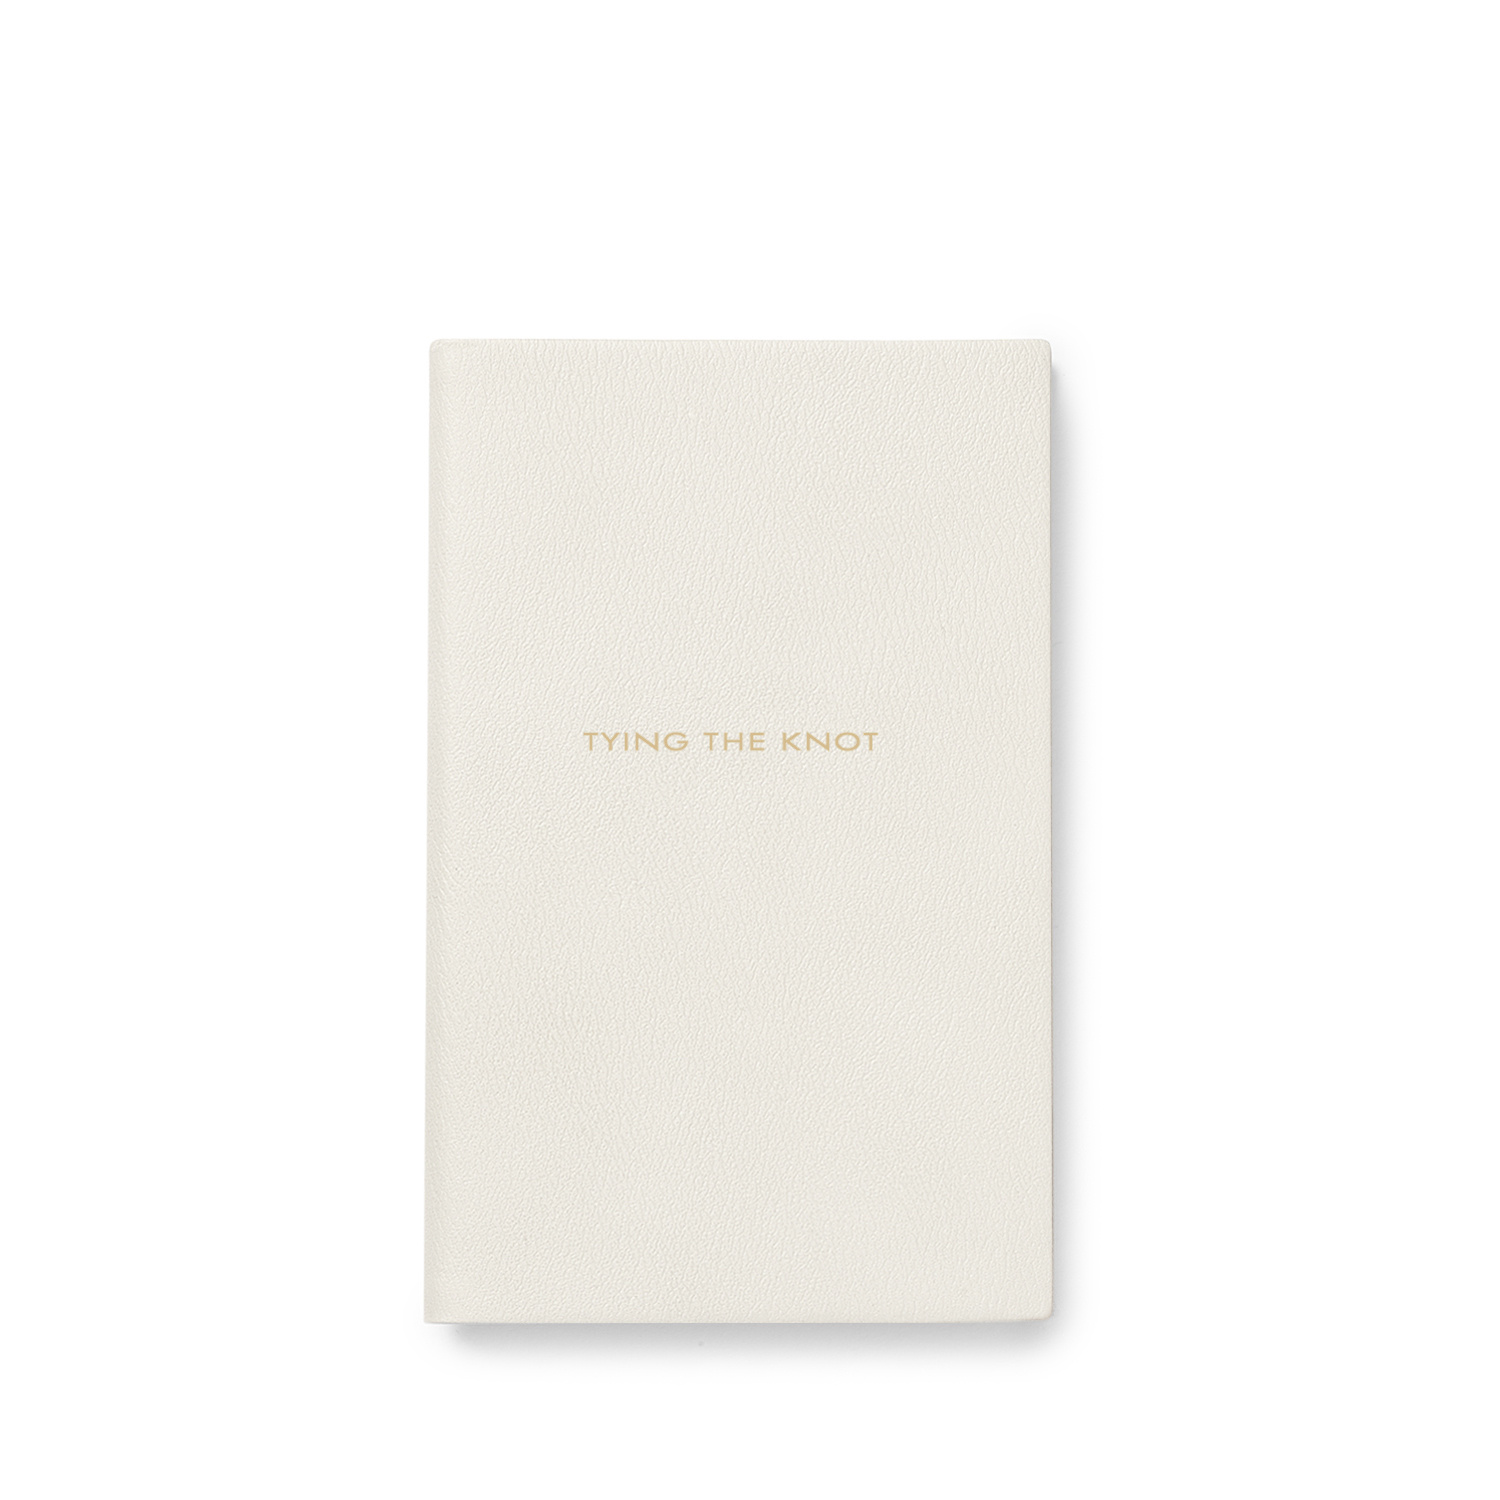 Smythson: 'Tying the Knot' panama notebook